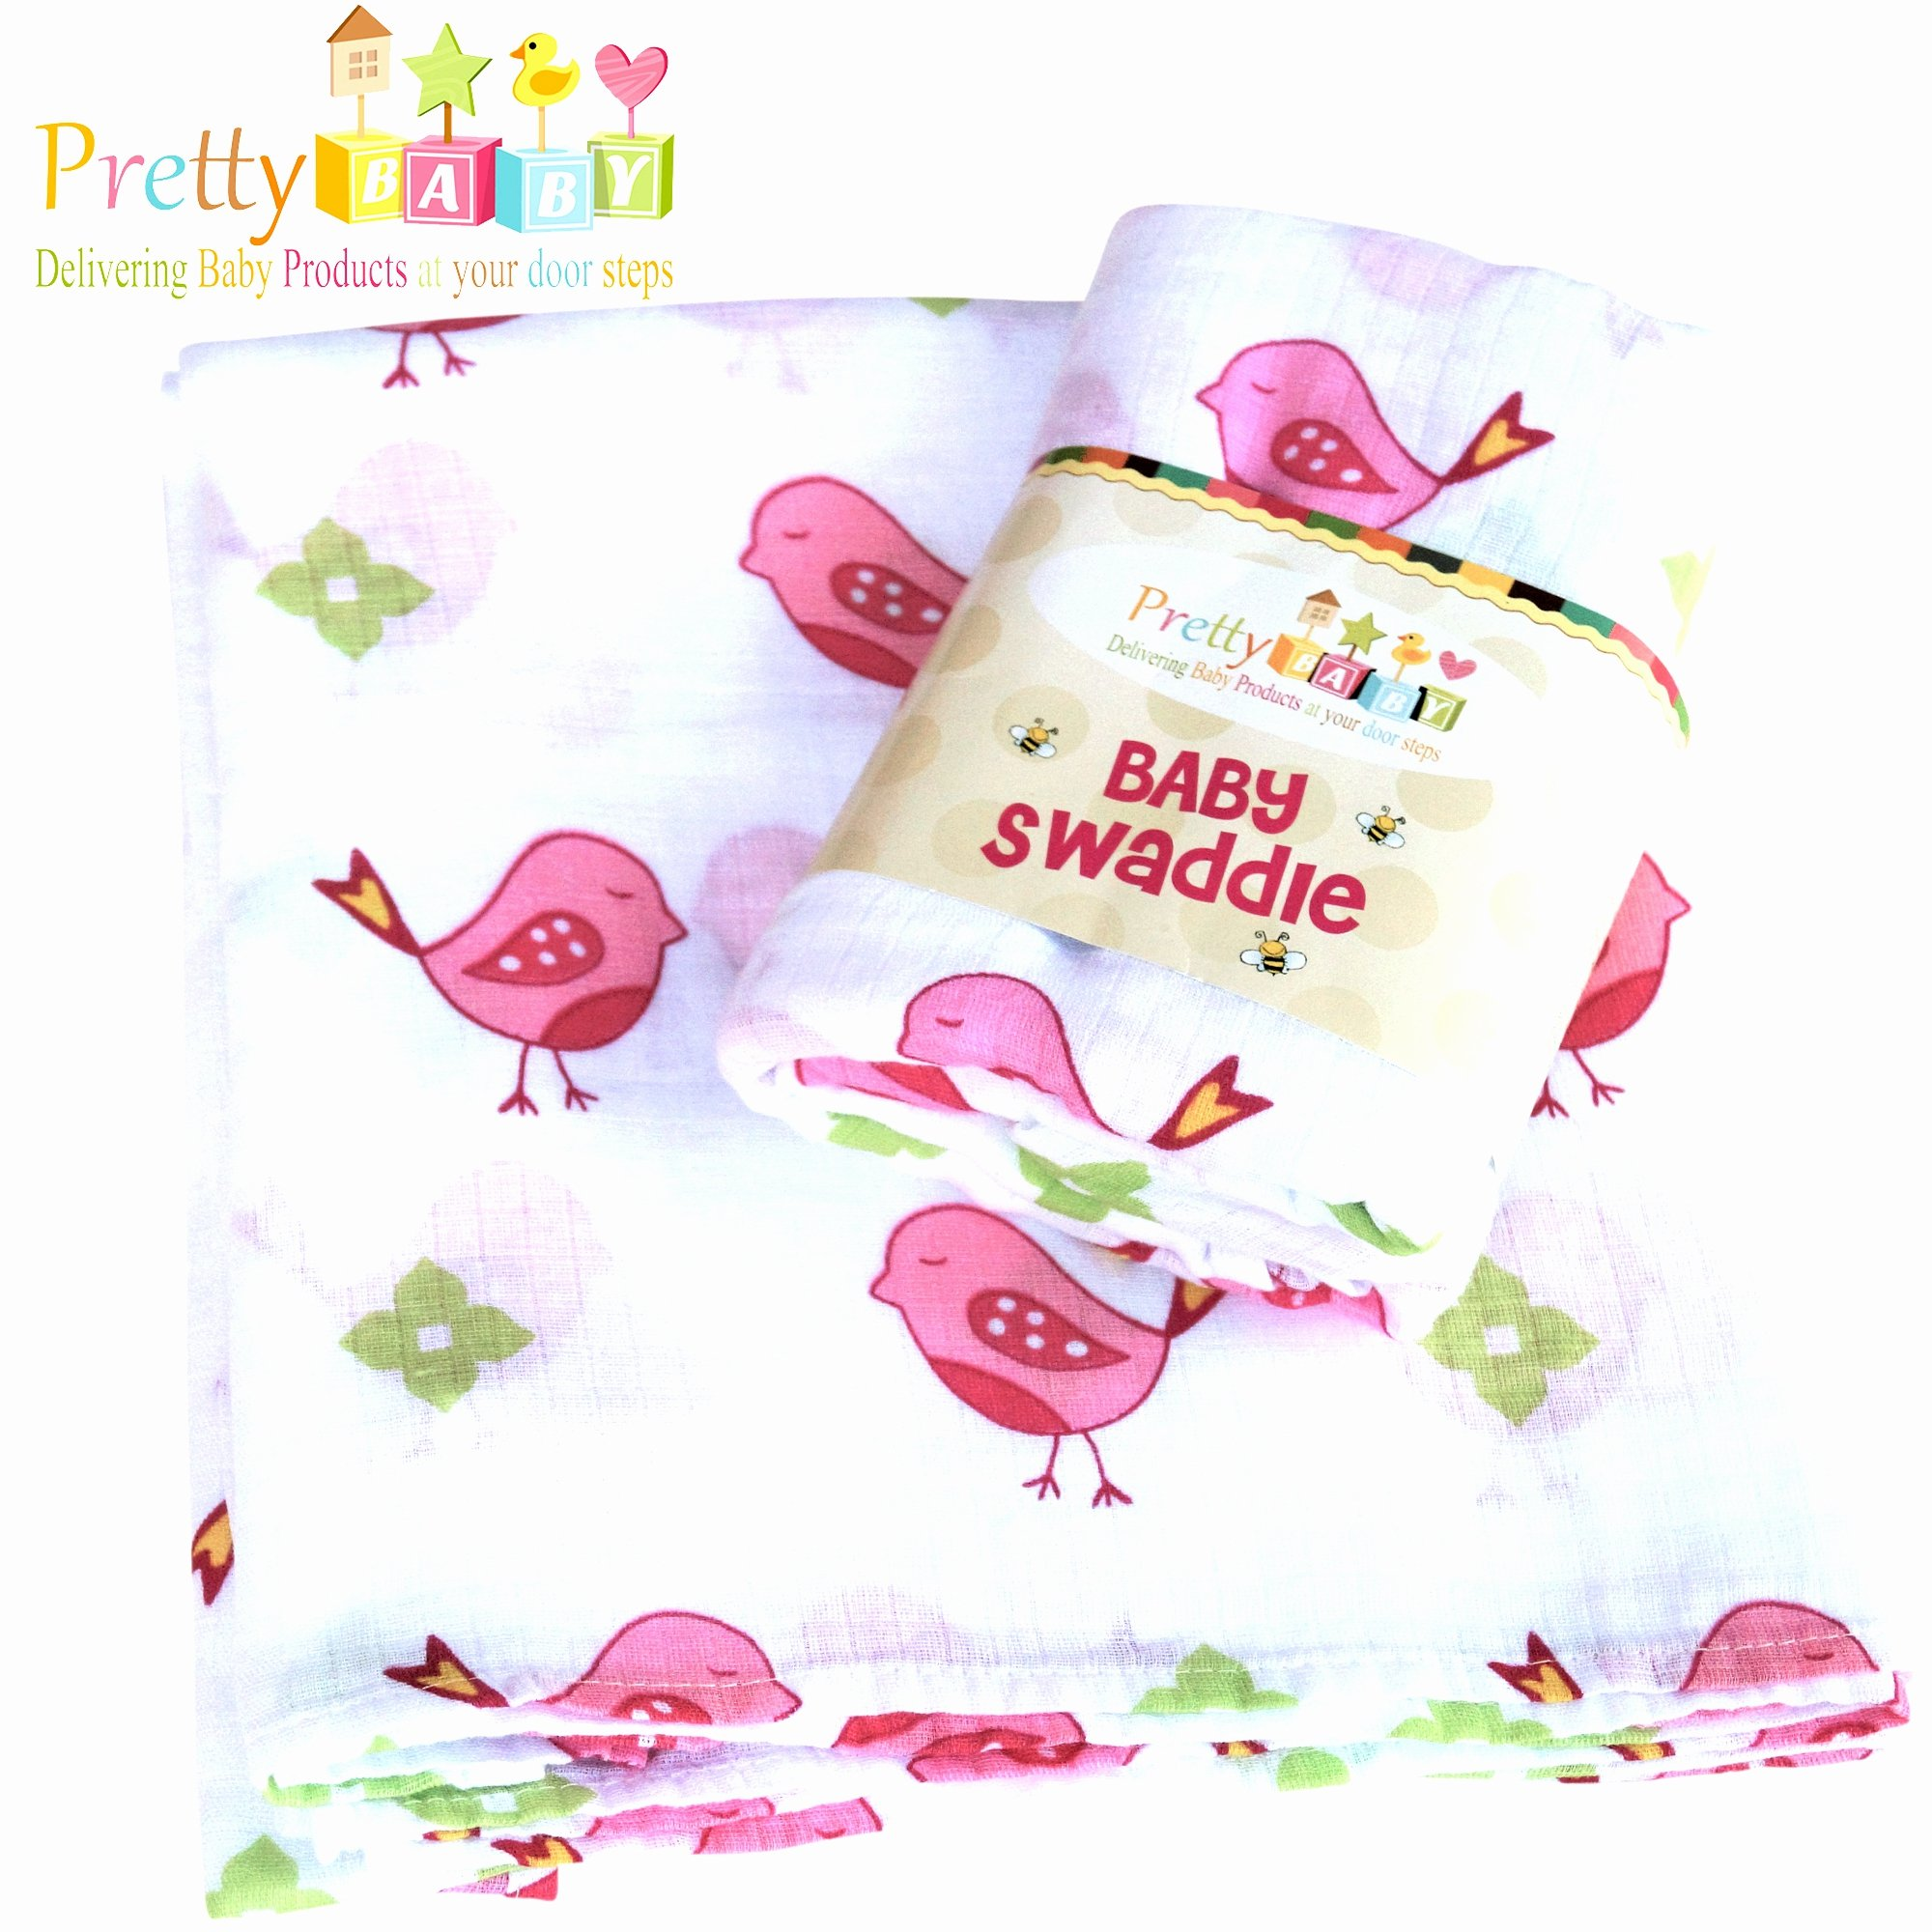 1 Soft & Breathable Baby Swaddle For Deeper Sleep. Multi Use Muslin Cotton Receiving, Swaddling Blanket, Nursing, Car Seat Cover. A Shower, Christmas Gifts. Baby Swaddle Blanket.